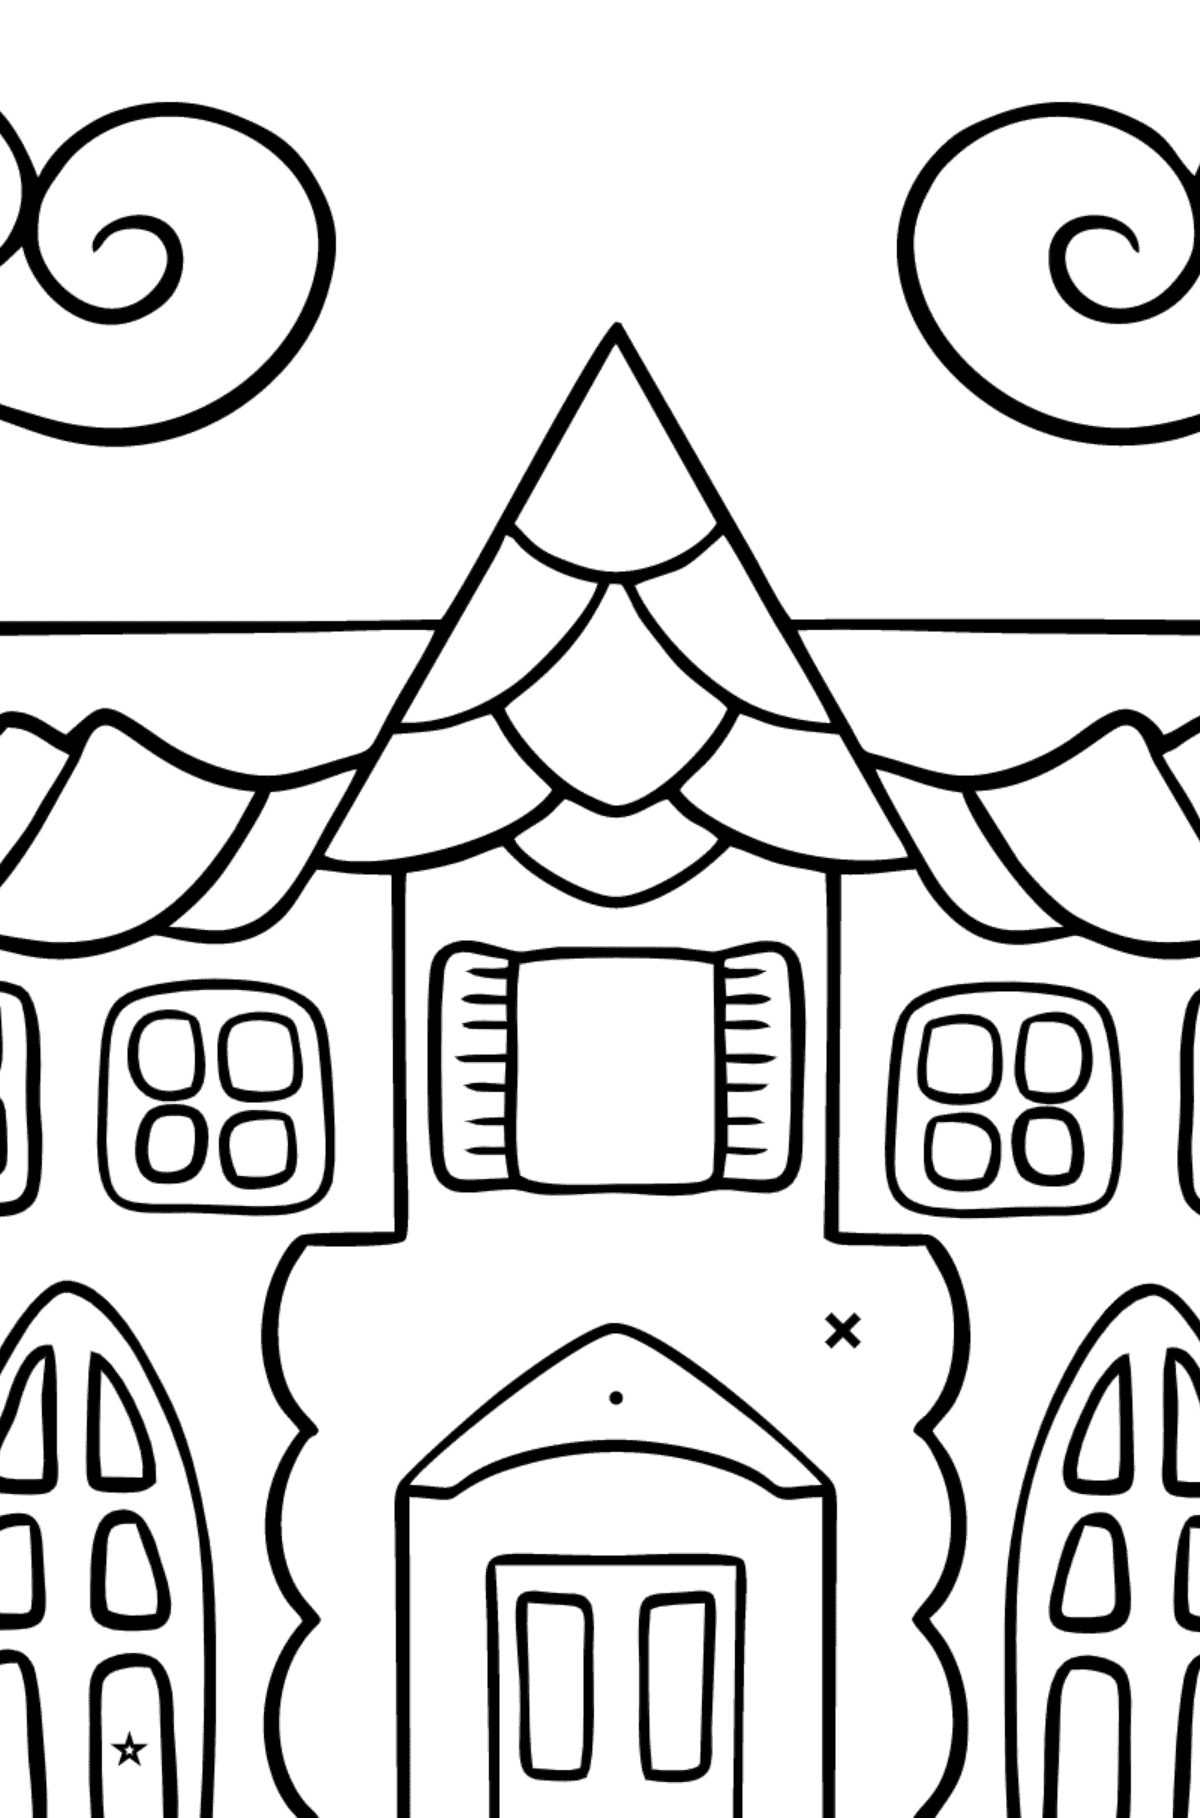 Simple Coloring Page - A House in an Enchanted Kingdom for Kids  - Color by Symbols and Geometric Shapes